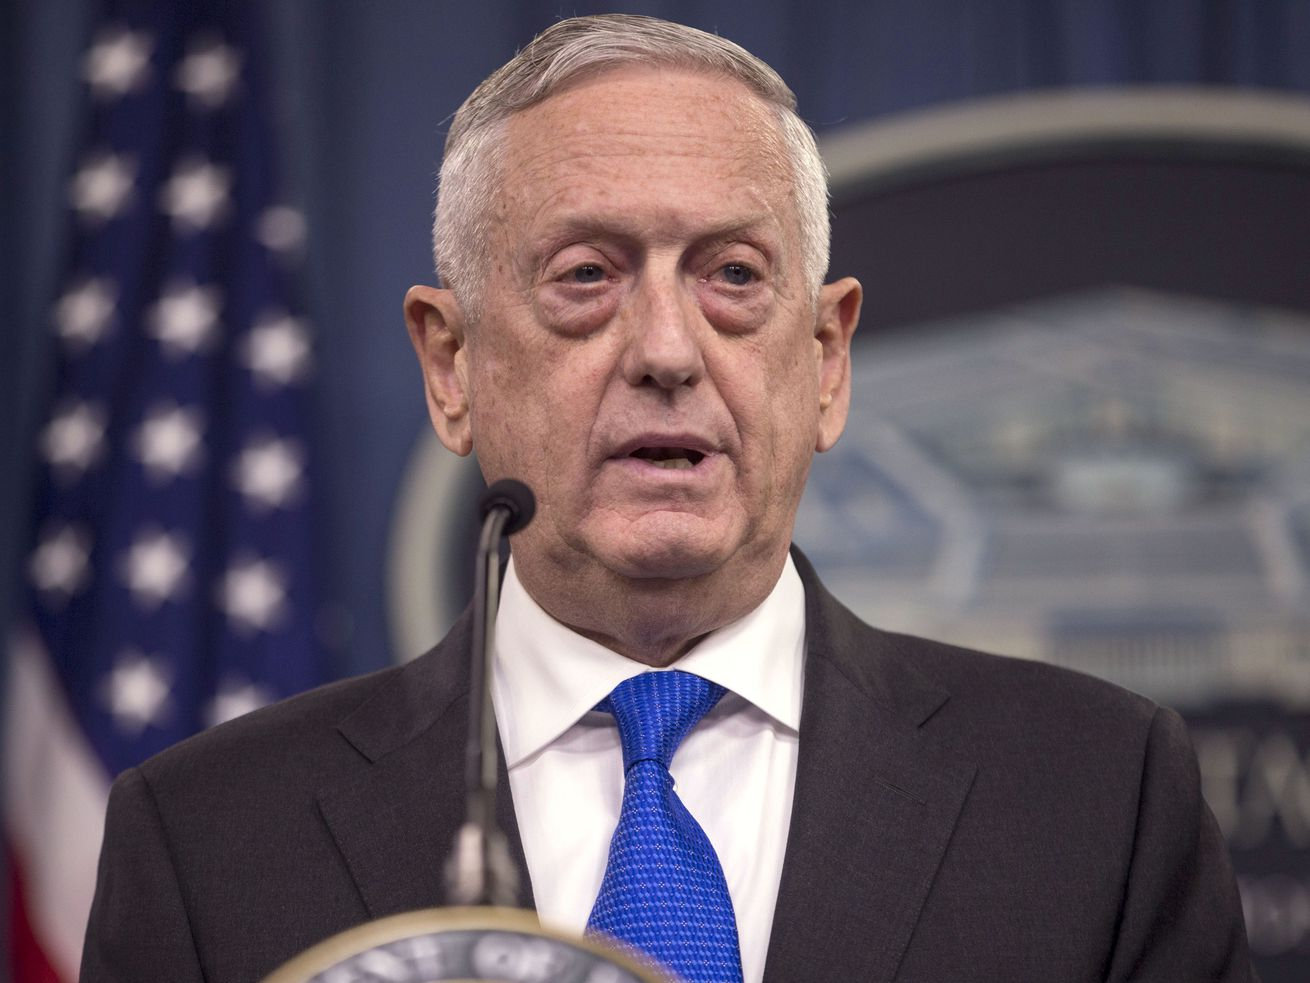 Secretary of Defense Jim Mattis is now on President Donald Trump's bad side. That's led some to say he may soon be on the way out.